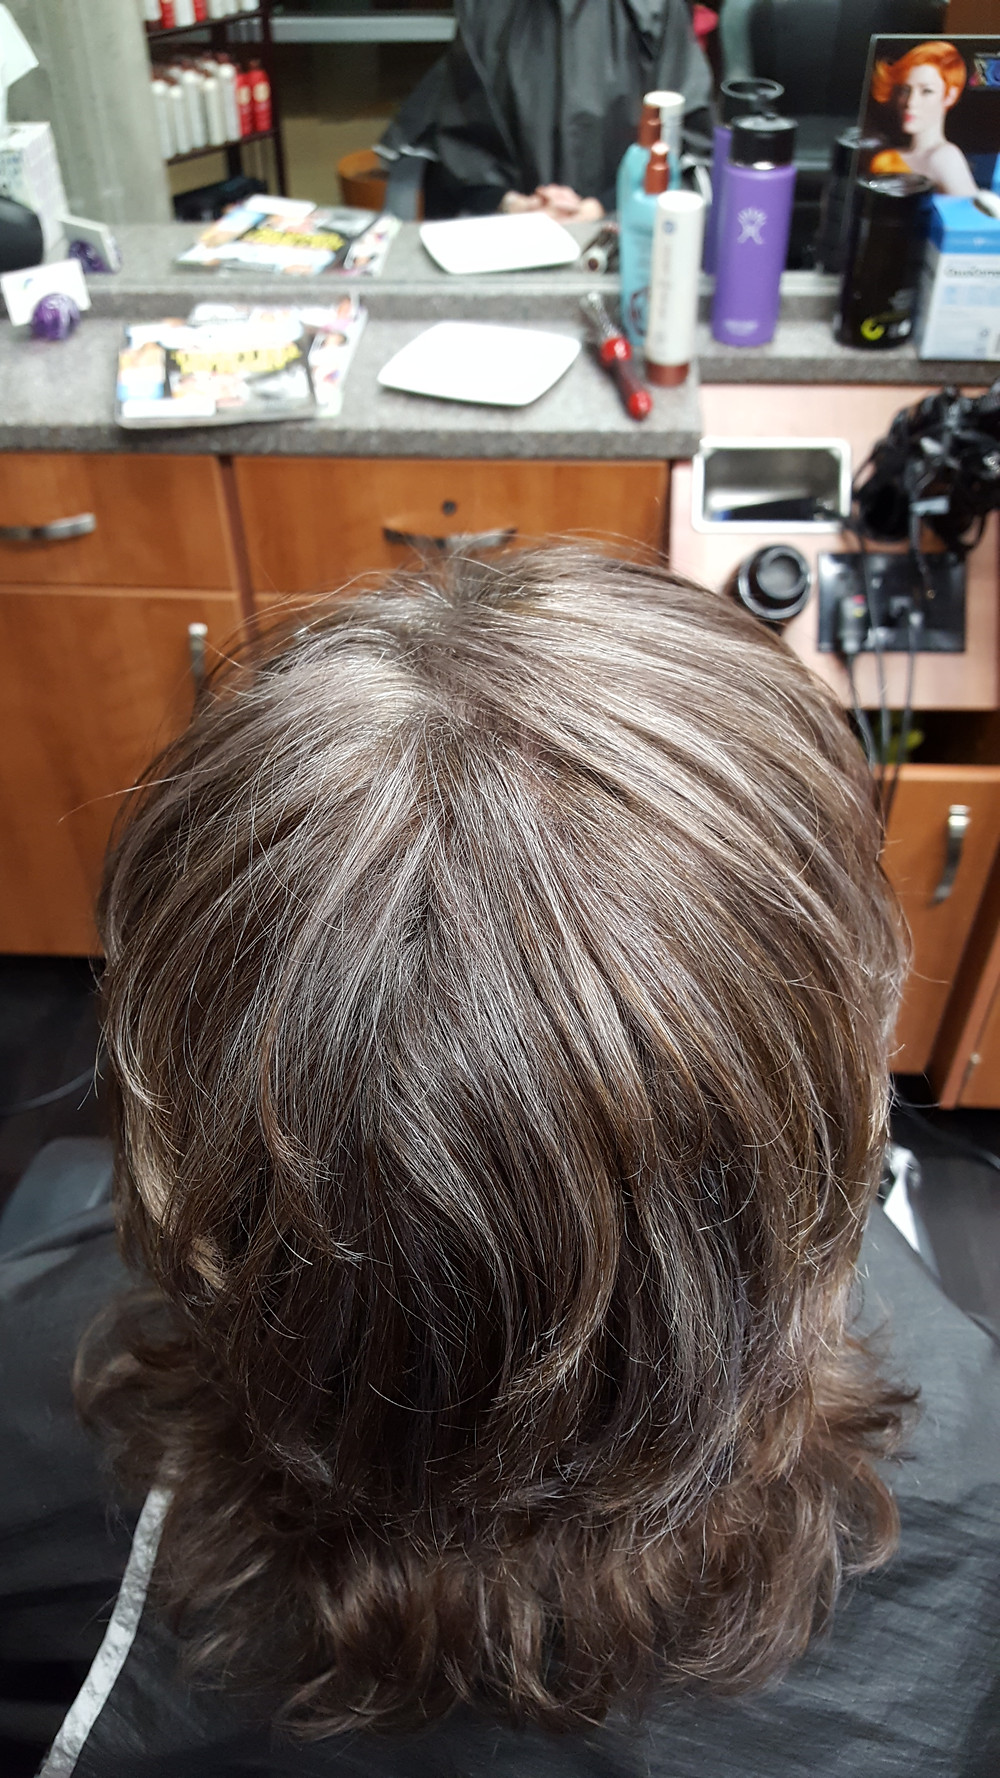 Grey hair beautifully blended with her brown hair